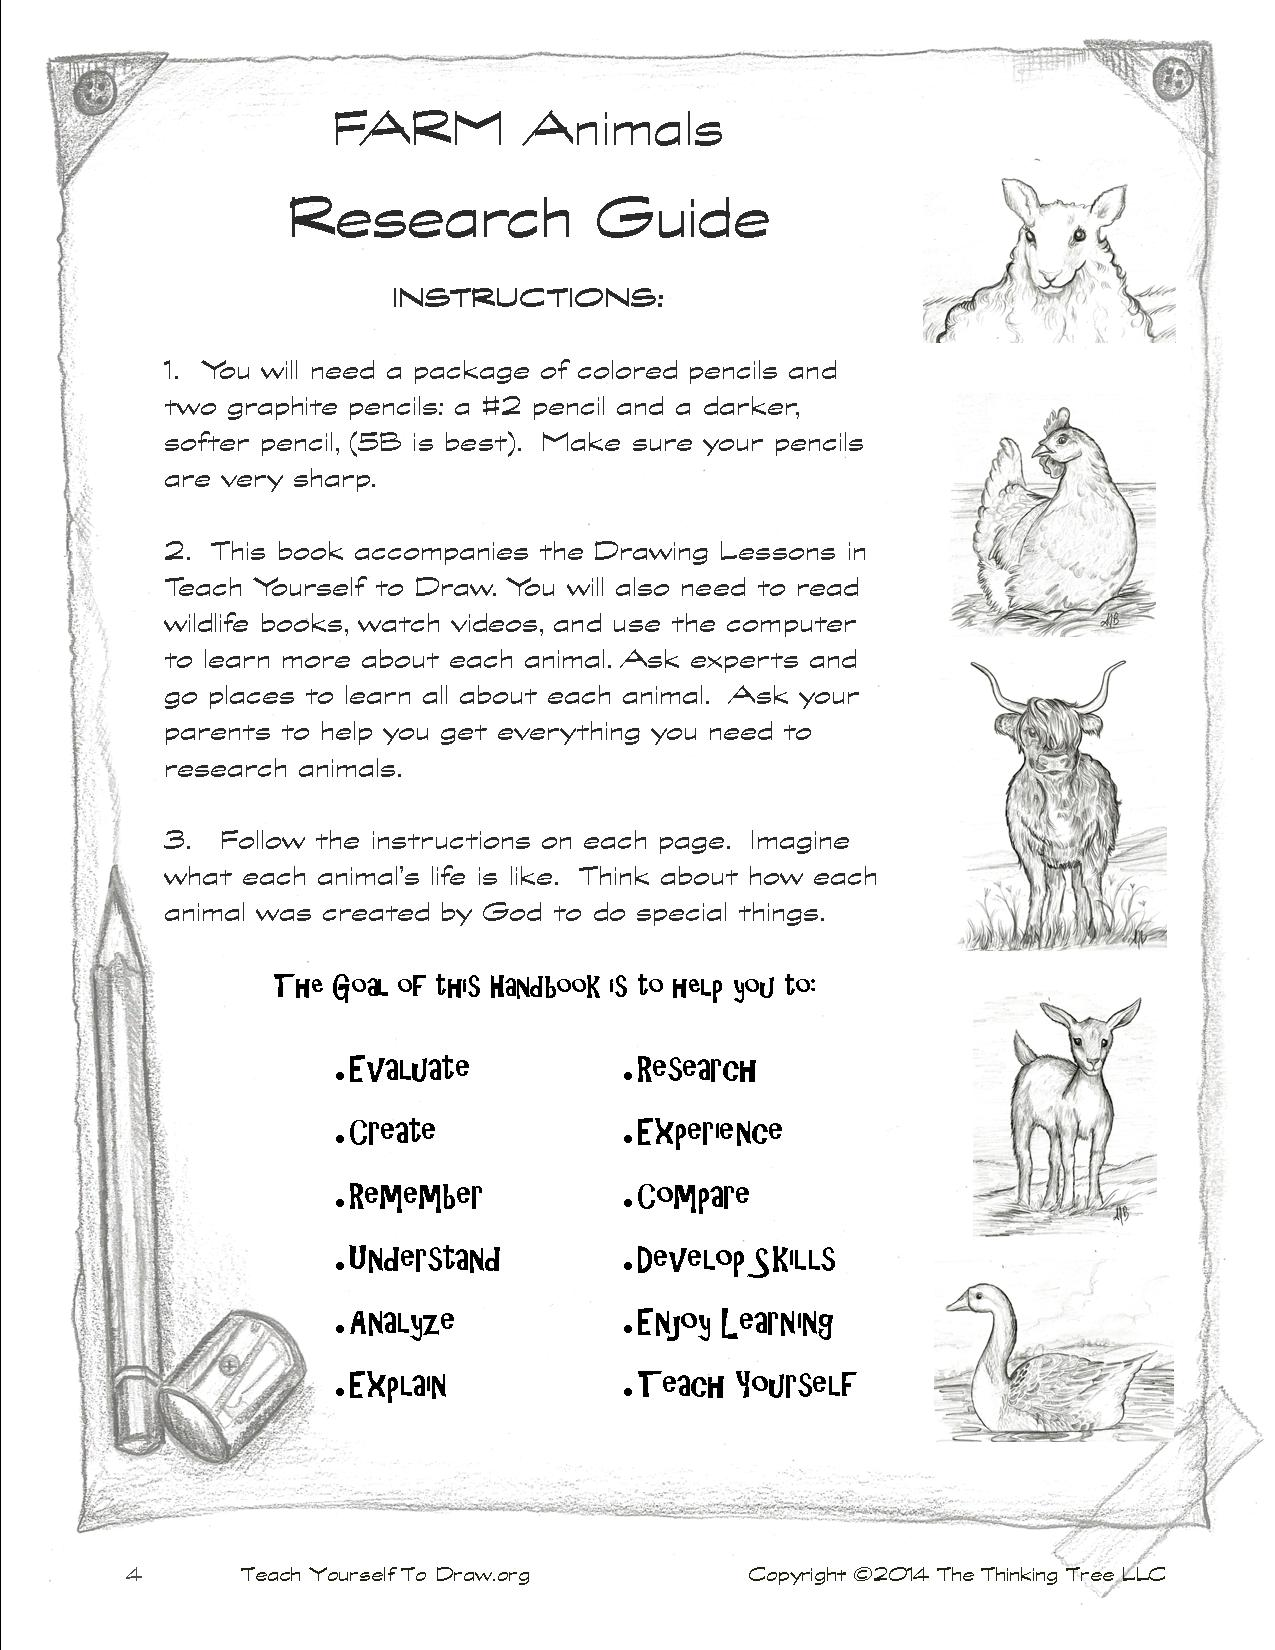 Farm Animals Handbook page 4.jpg